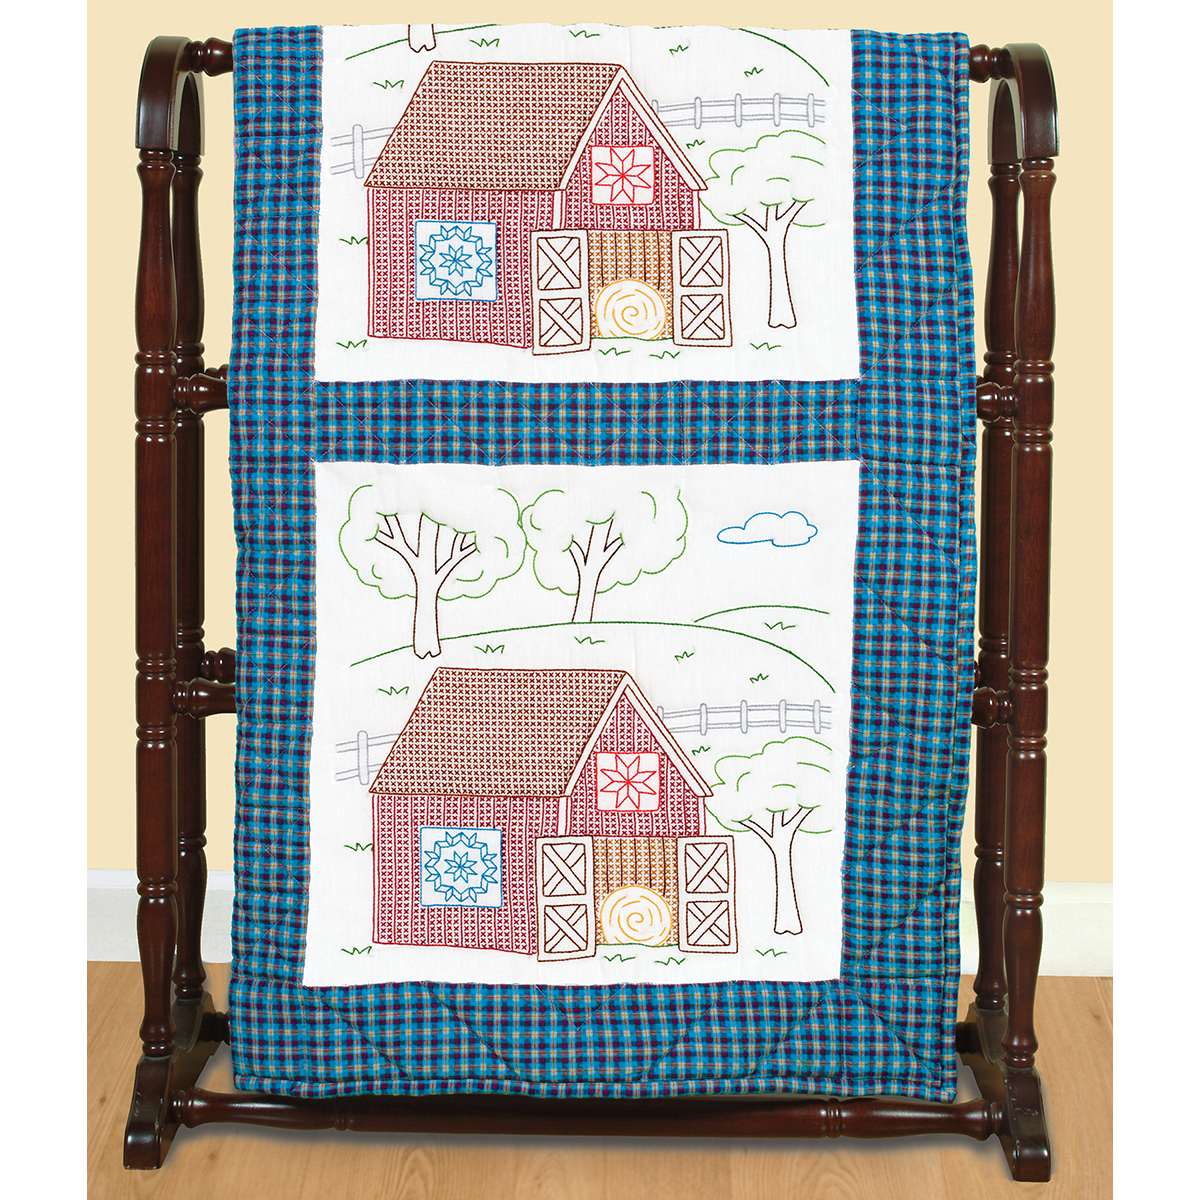 Stamped Embroidery Blocks - 18in - Barns